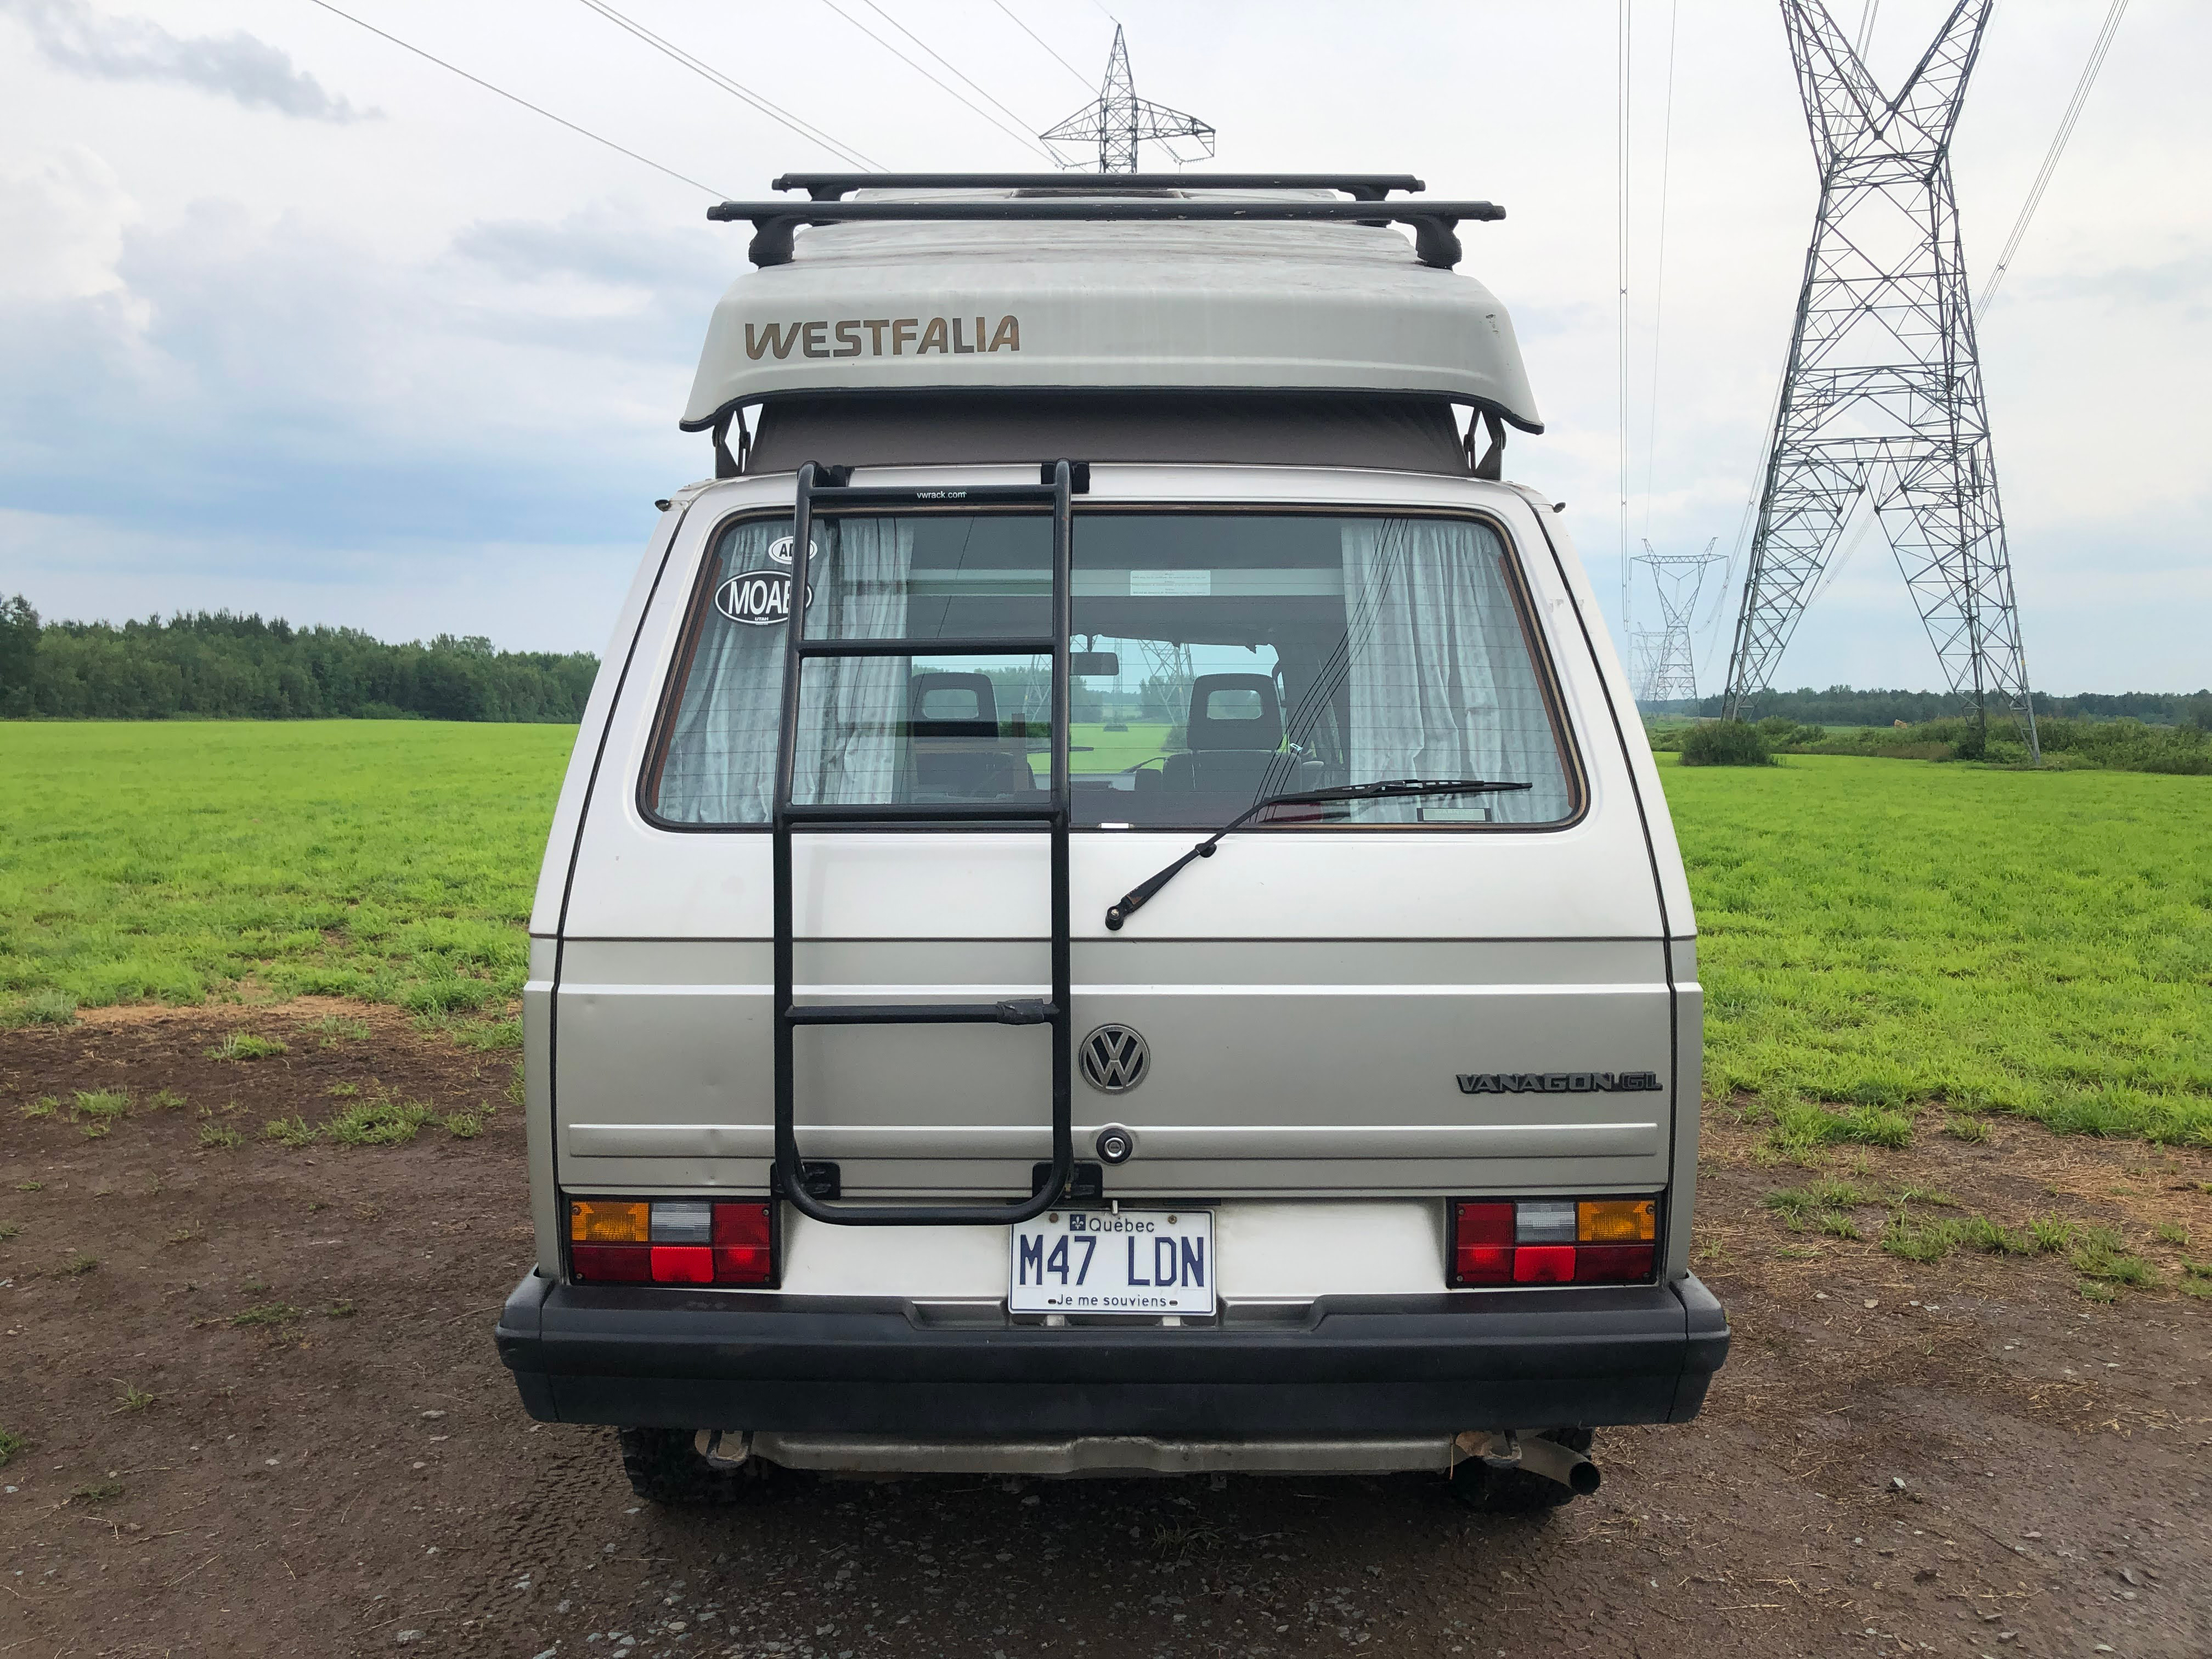 The rear end of a 1990 Volkswagen Vanagon Westfalia. We spoke with someone who owns the camper van to get some insight into buying one.